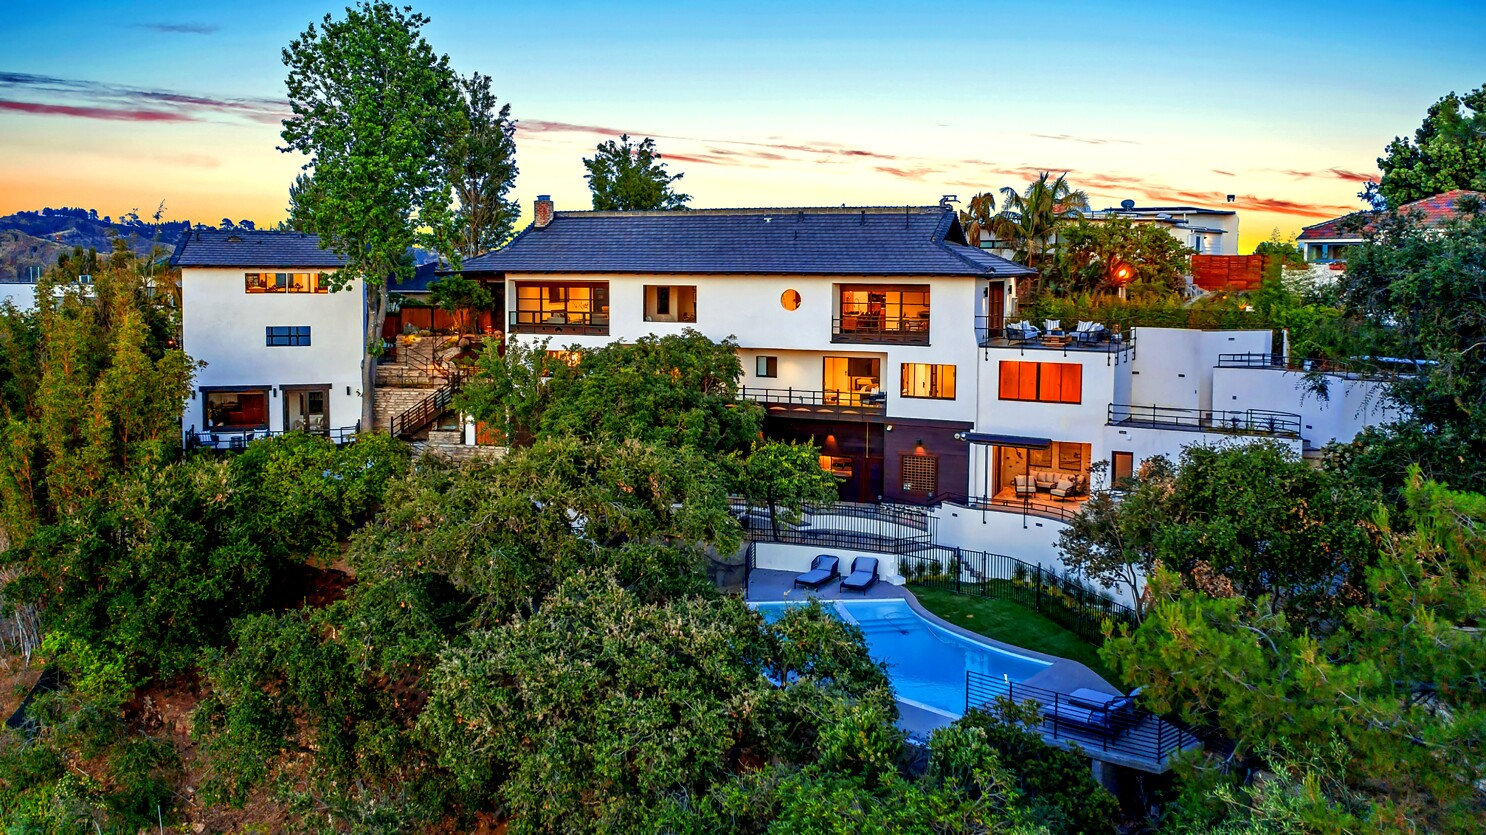 Home of the Week: Beachwood Canyon residence is a worldly showcase